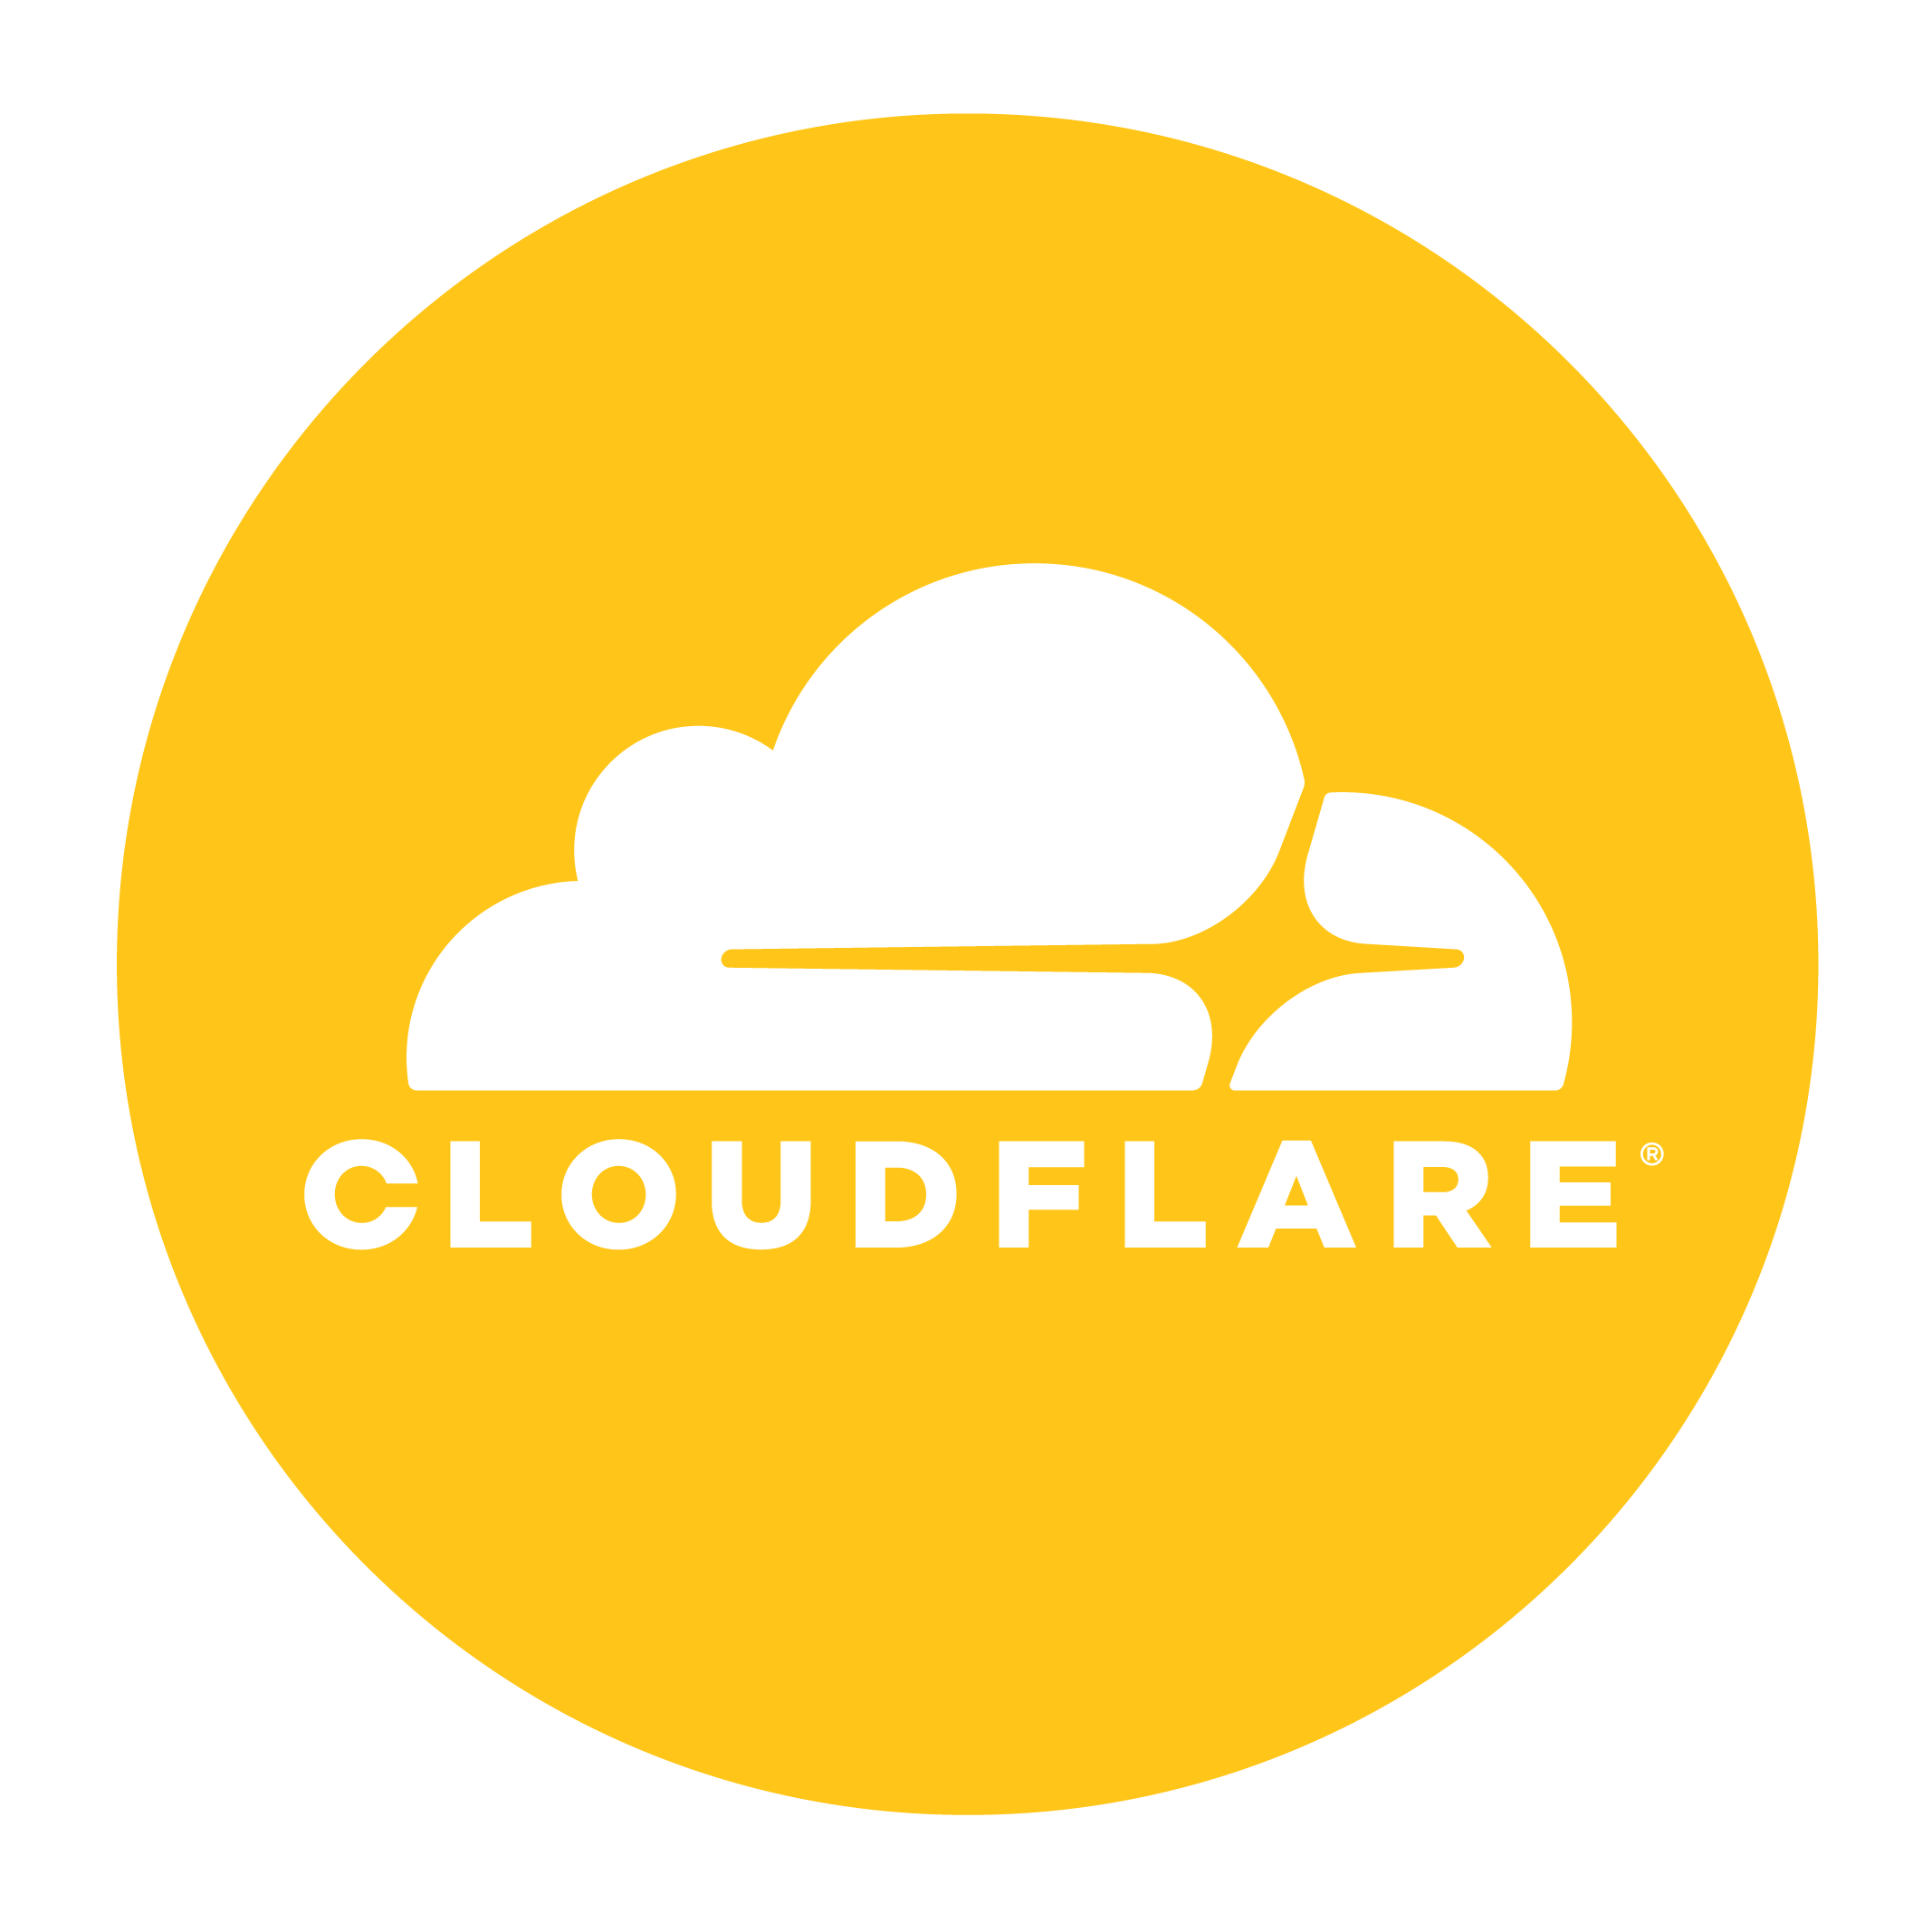 Support CloudFlare